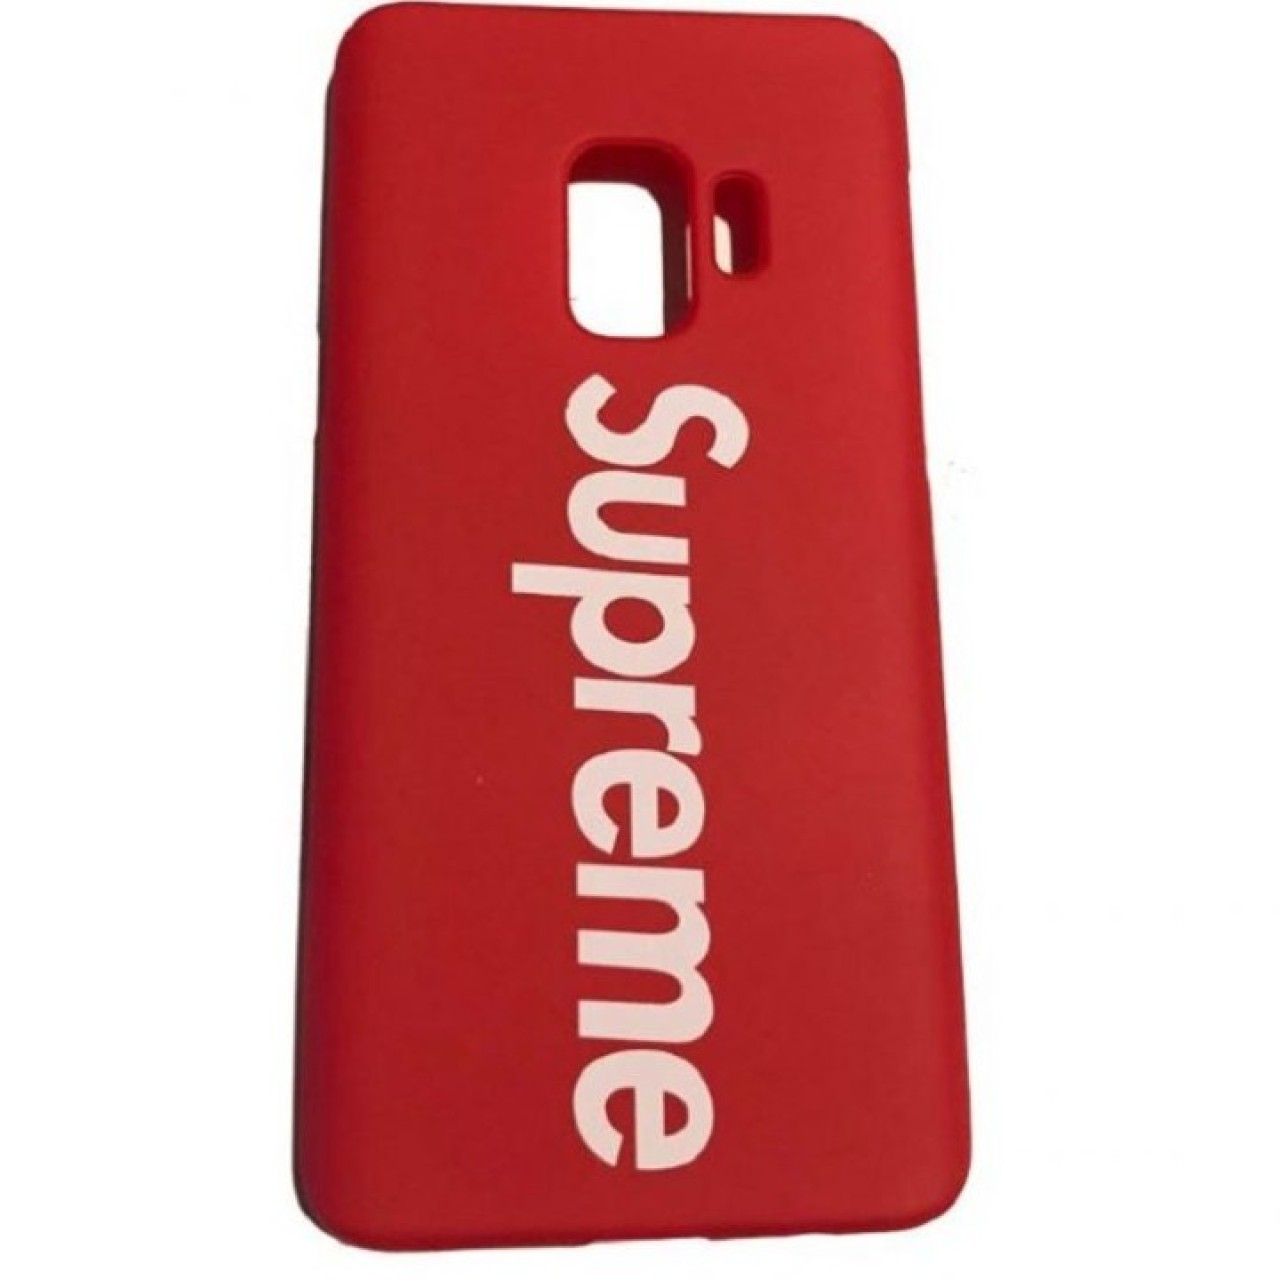 Will Samsung China's deal with 'knock-off' Supreme brand backfire on